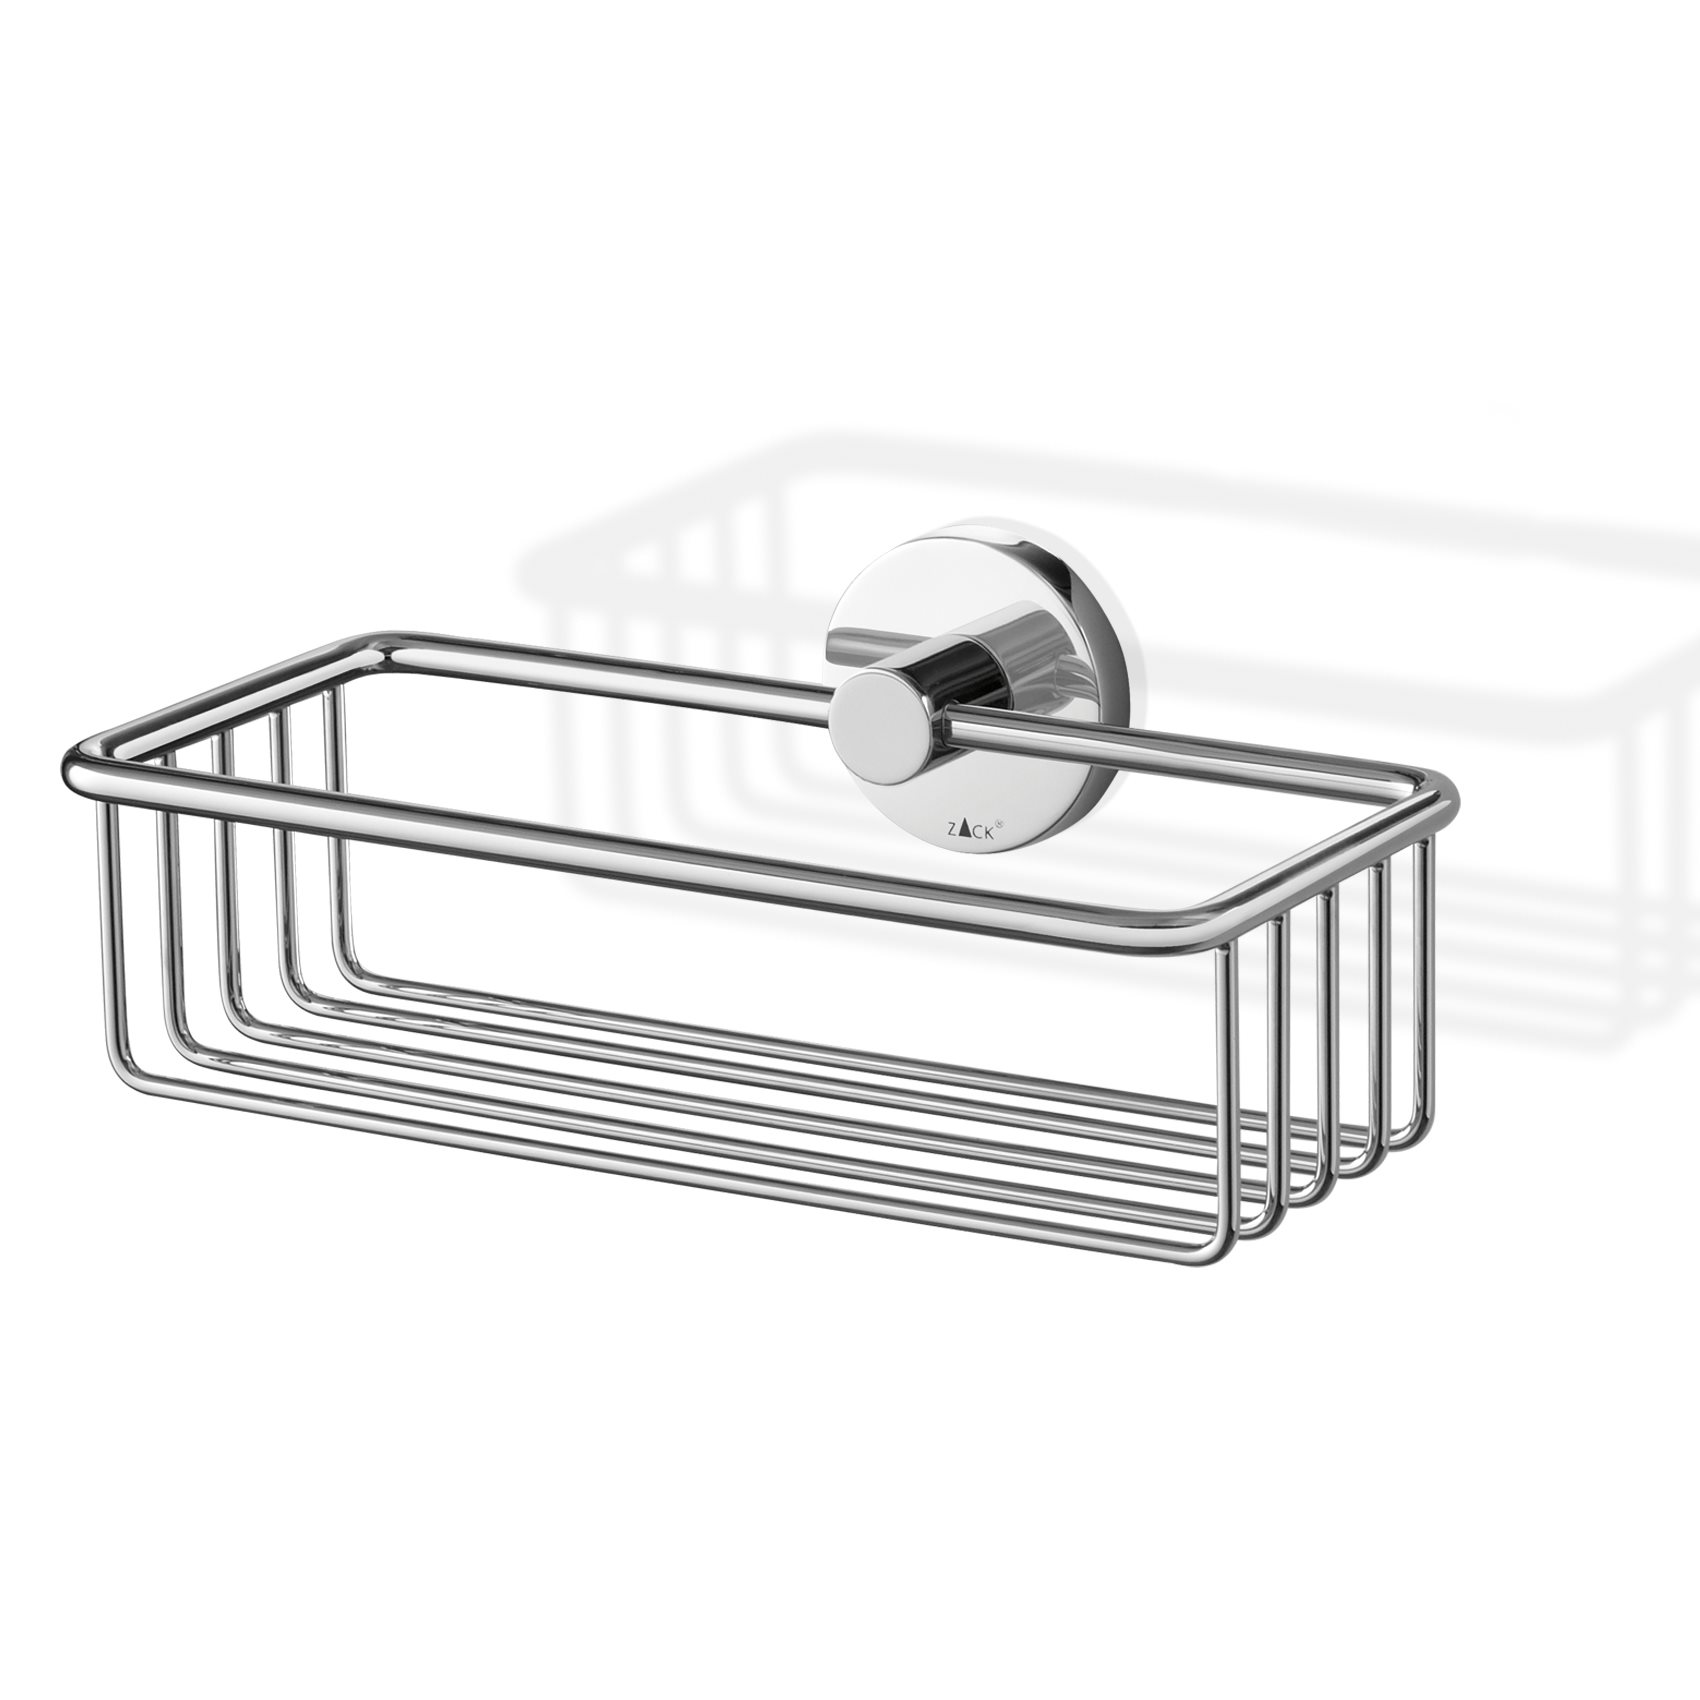 ZACK shower basket SCALA polished stainless steel for wall mounting ...